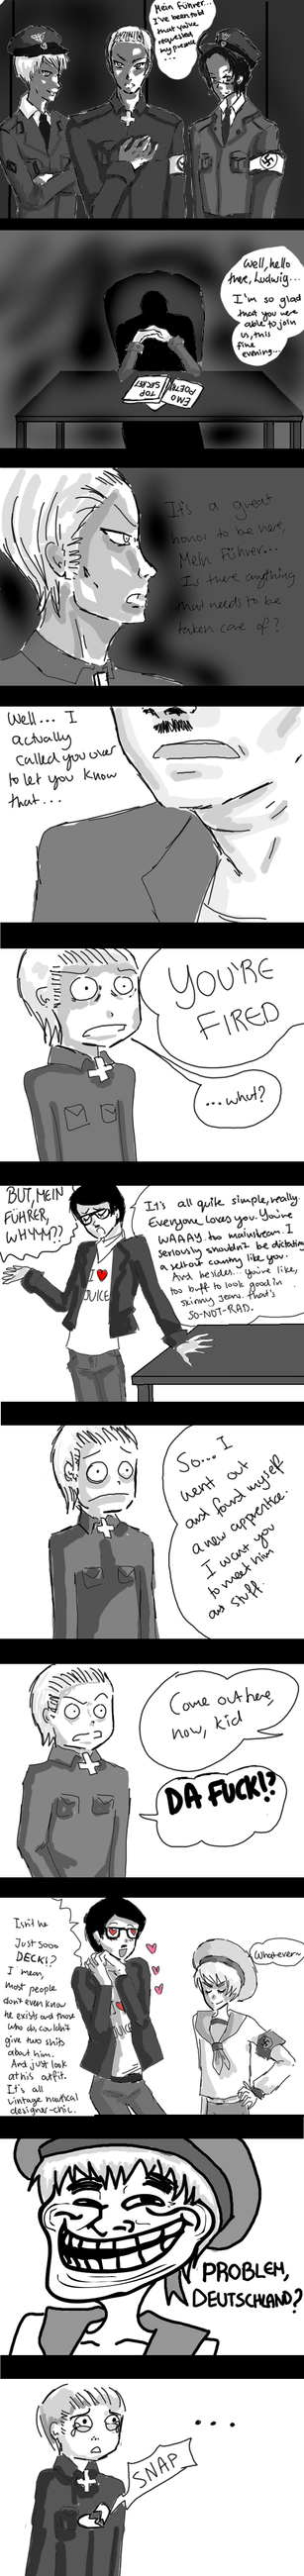 HIPSTER HITLER vs. APH by sirseesrainbows